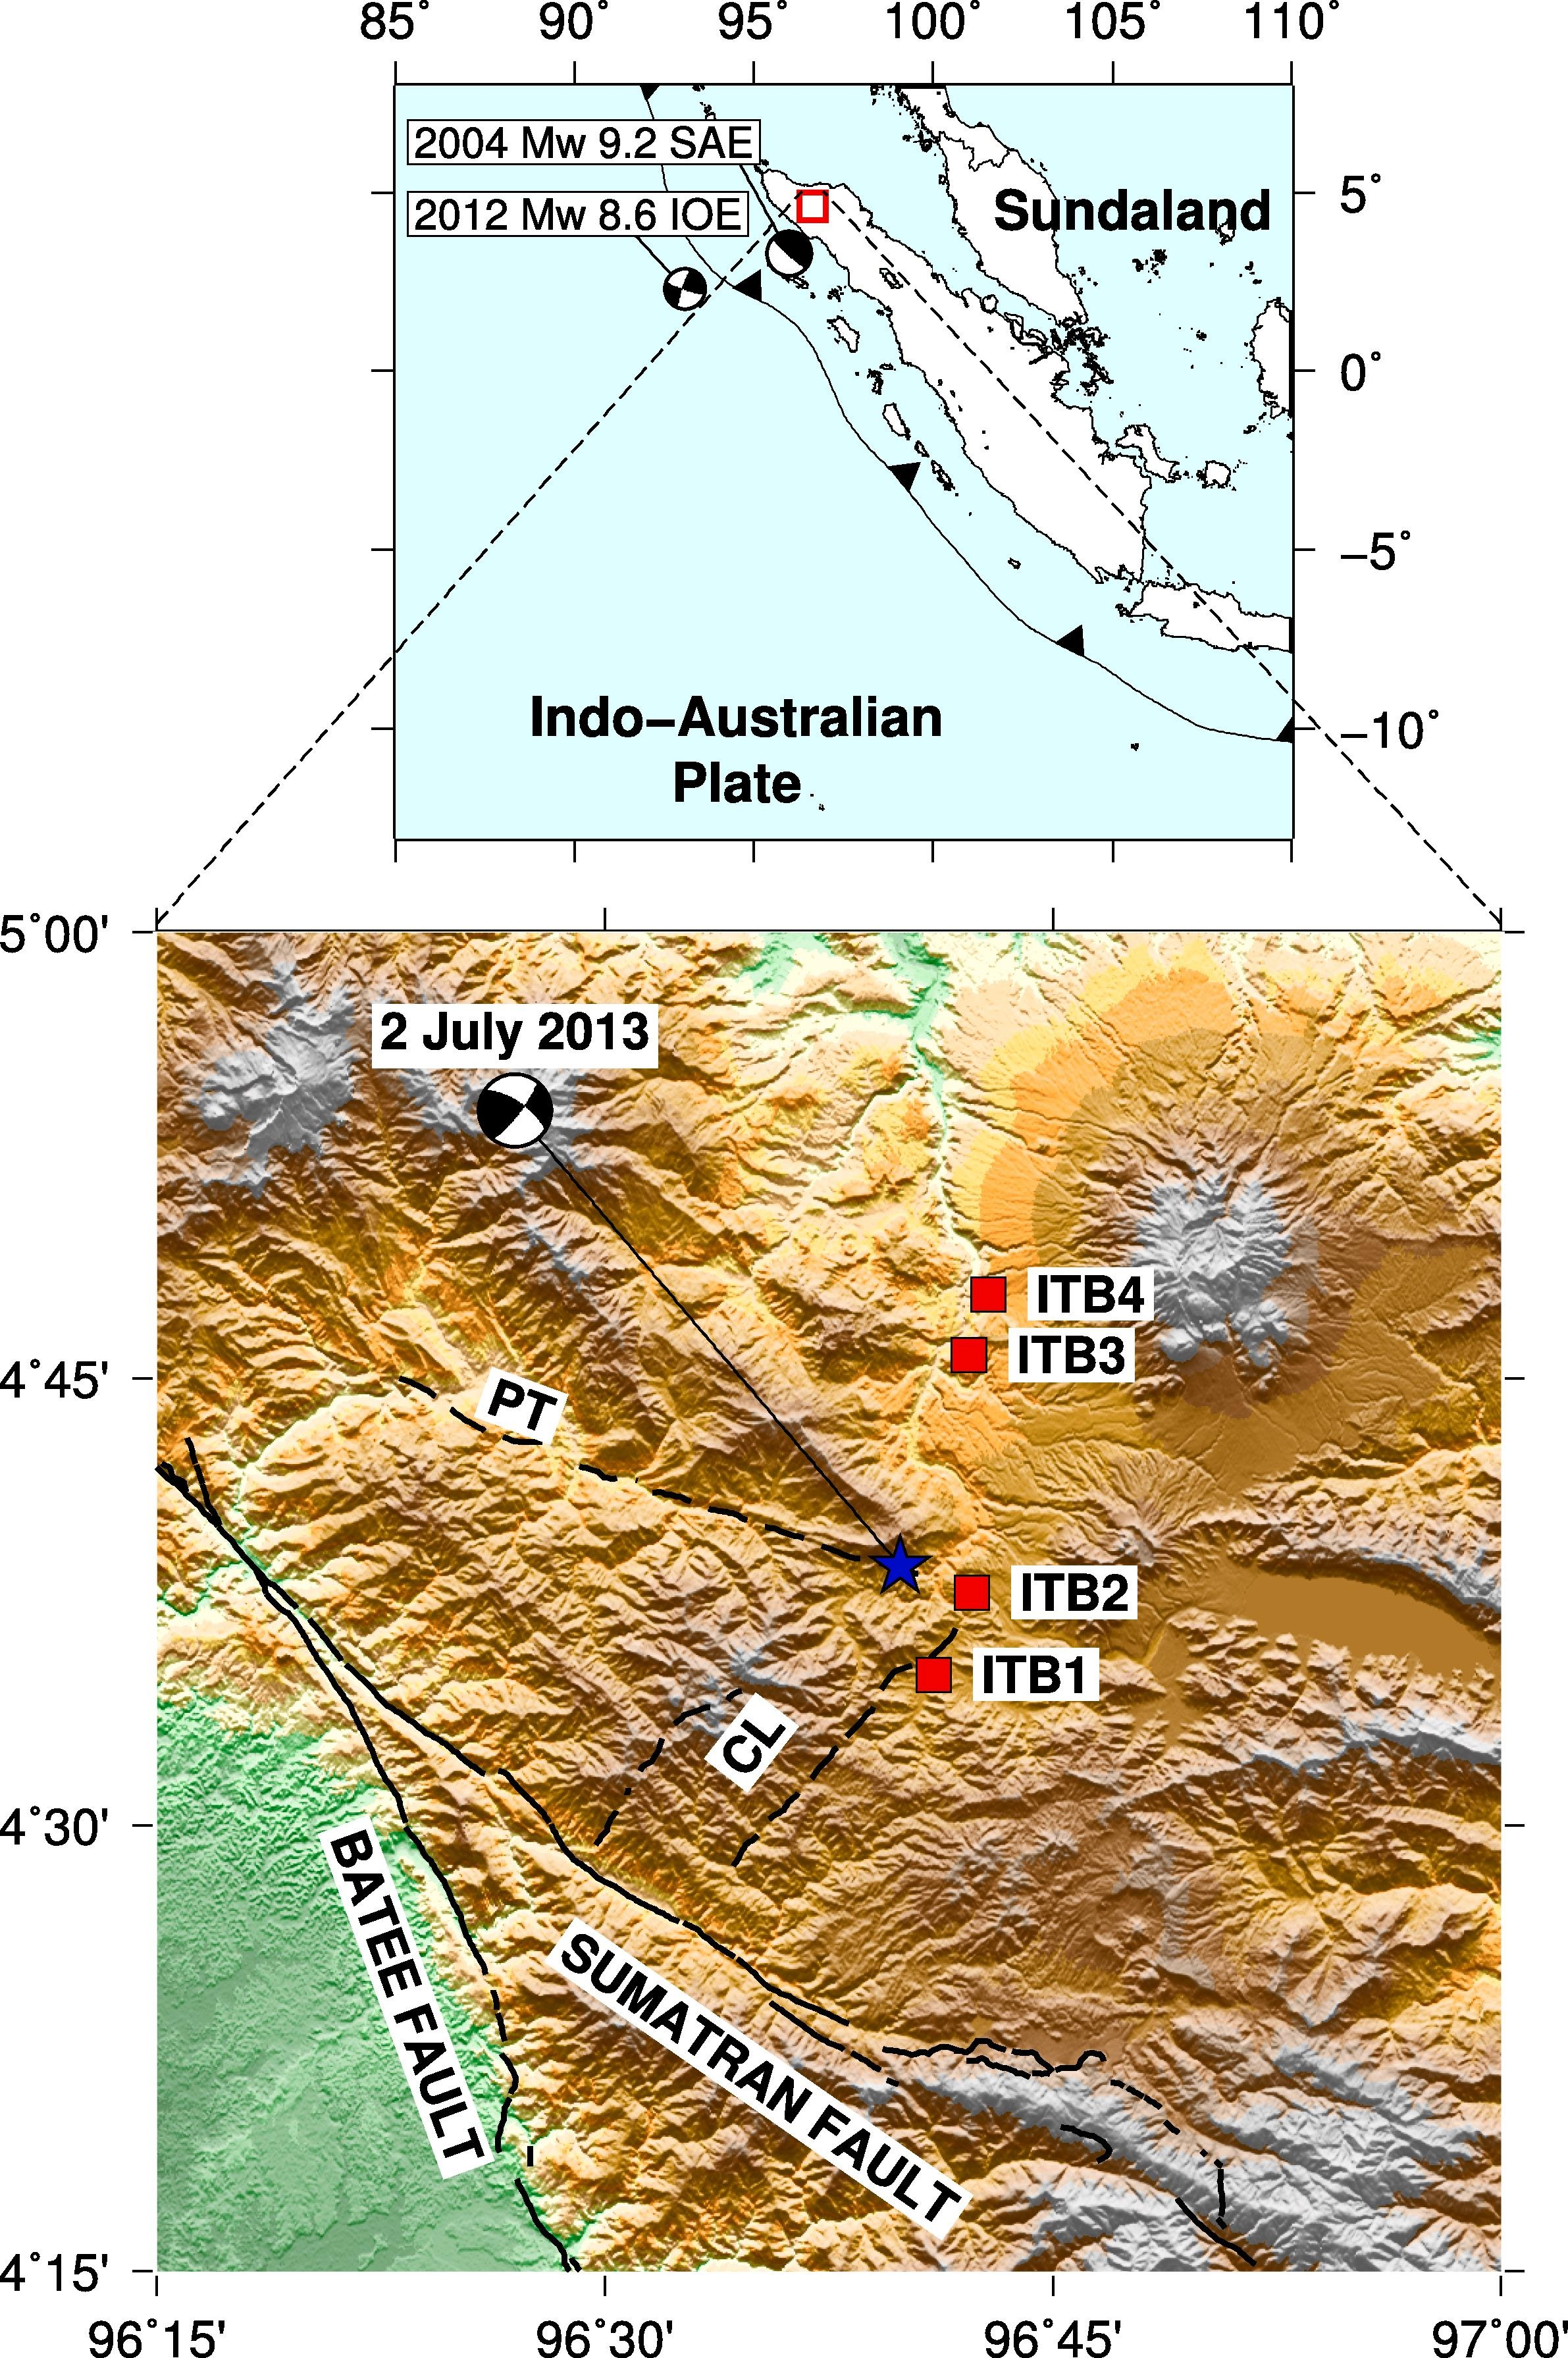 Fig. 1. Tectonic setting of this study. The blue star indicates the epicenter of the 2 July 2013 AE based on the United States Geological Survey catalog. The red squares indicate GPS stations, while the solid black lines suggest the locations of the identified Sumatran and Batee faults (Sieh and Natawidjaja, 2000). The dashed line marks the newly identified fault segments of Pantan Terong (PT) and Celala (CL). Topography created using Shuttle Radar Topography Mission (SRTM) 90 m (Jarvis et al., 2008). The inset shows the global map and the epicenter of the 2004 SAE and 2012 IOE. (For interpretation of the references to color in this figure legend, the reader is referred to the web version of this article.)